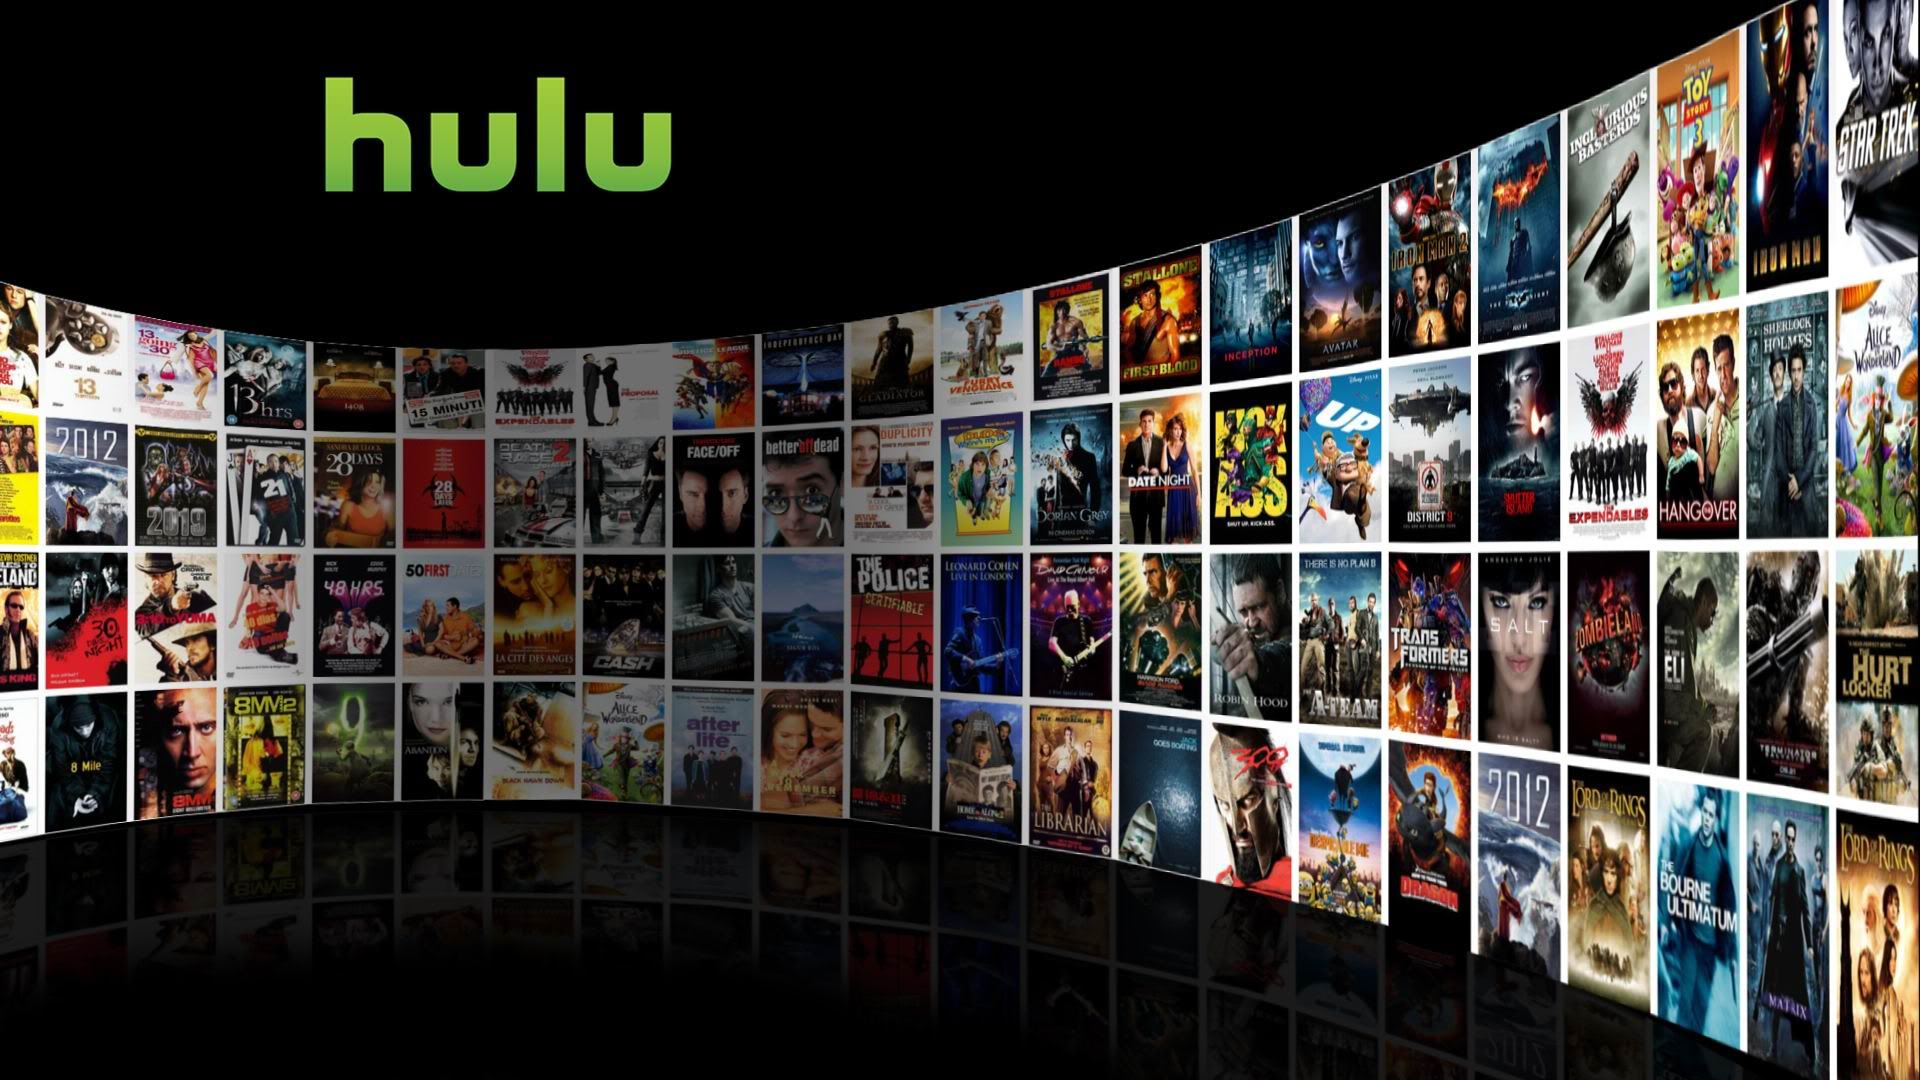 Hulu Comings and Goings: What's New and What's Leaving In